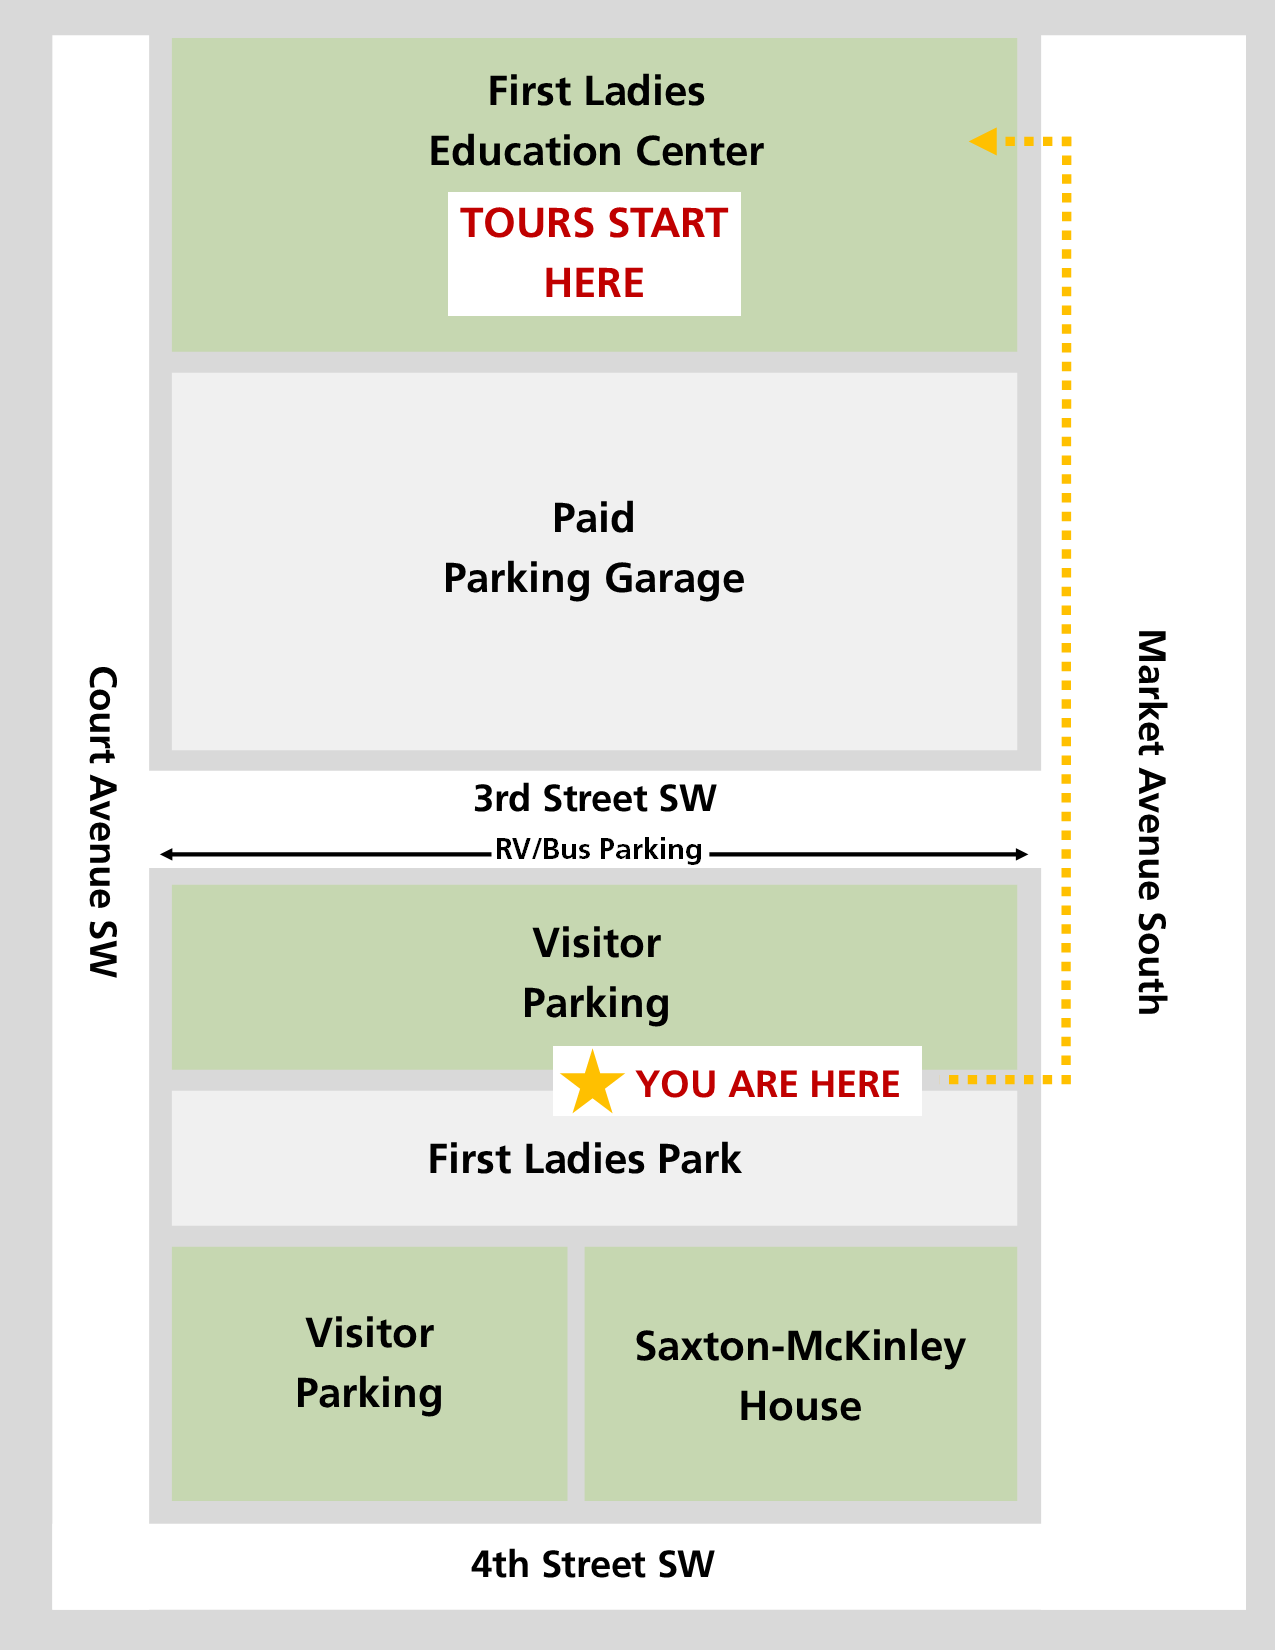 From the parking lot, walk north one block to the visitor center. The visitor center is located on the other side of the parking garage.